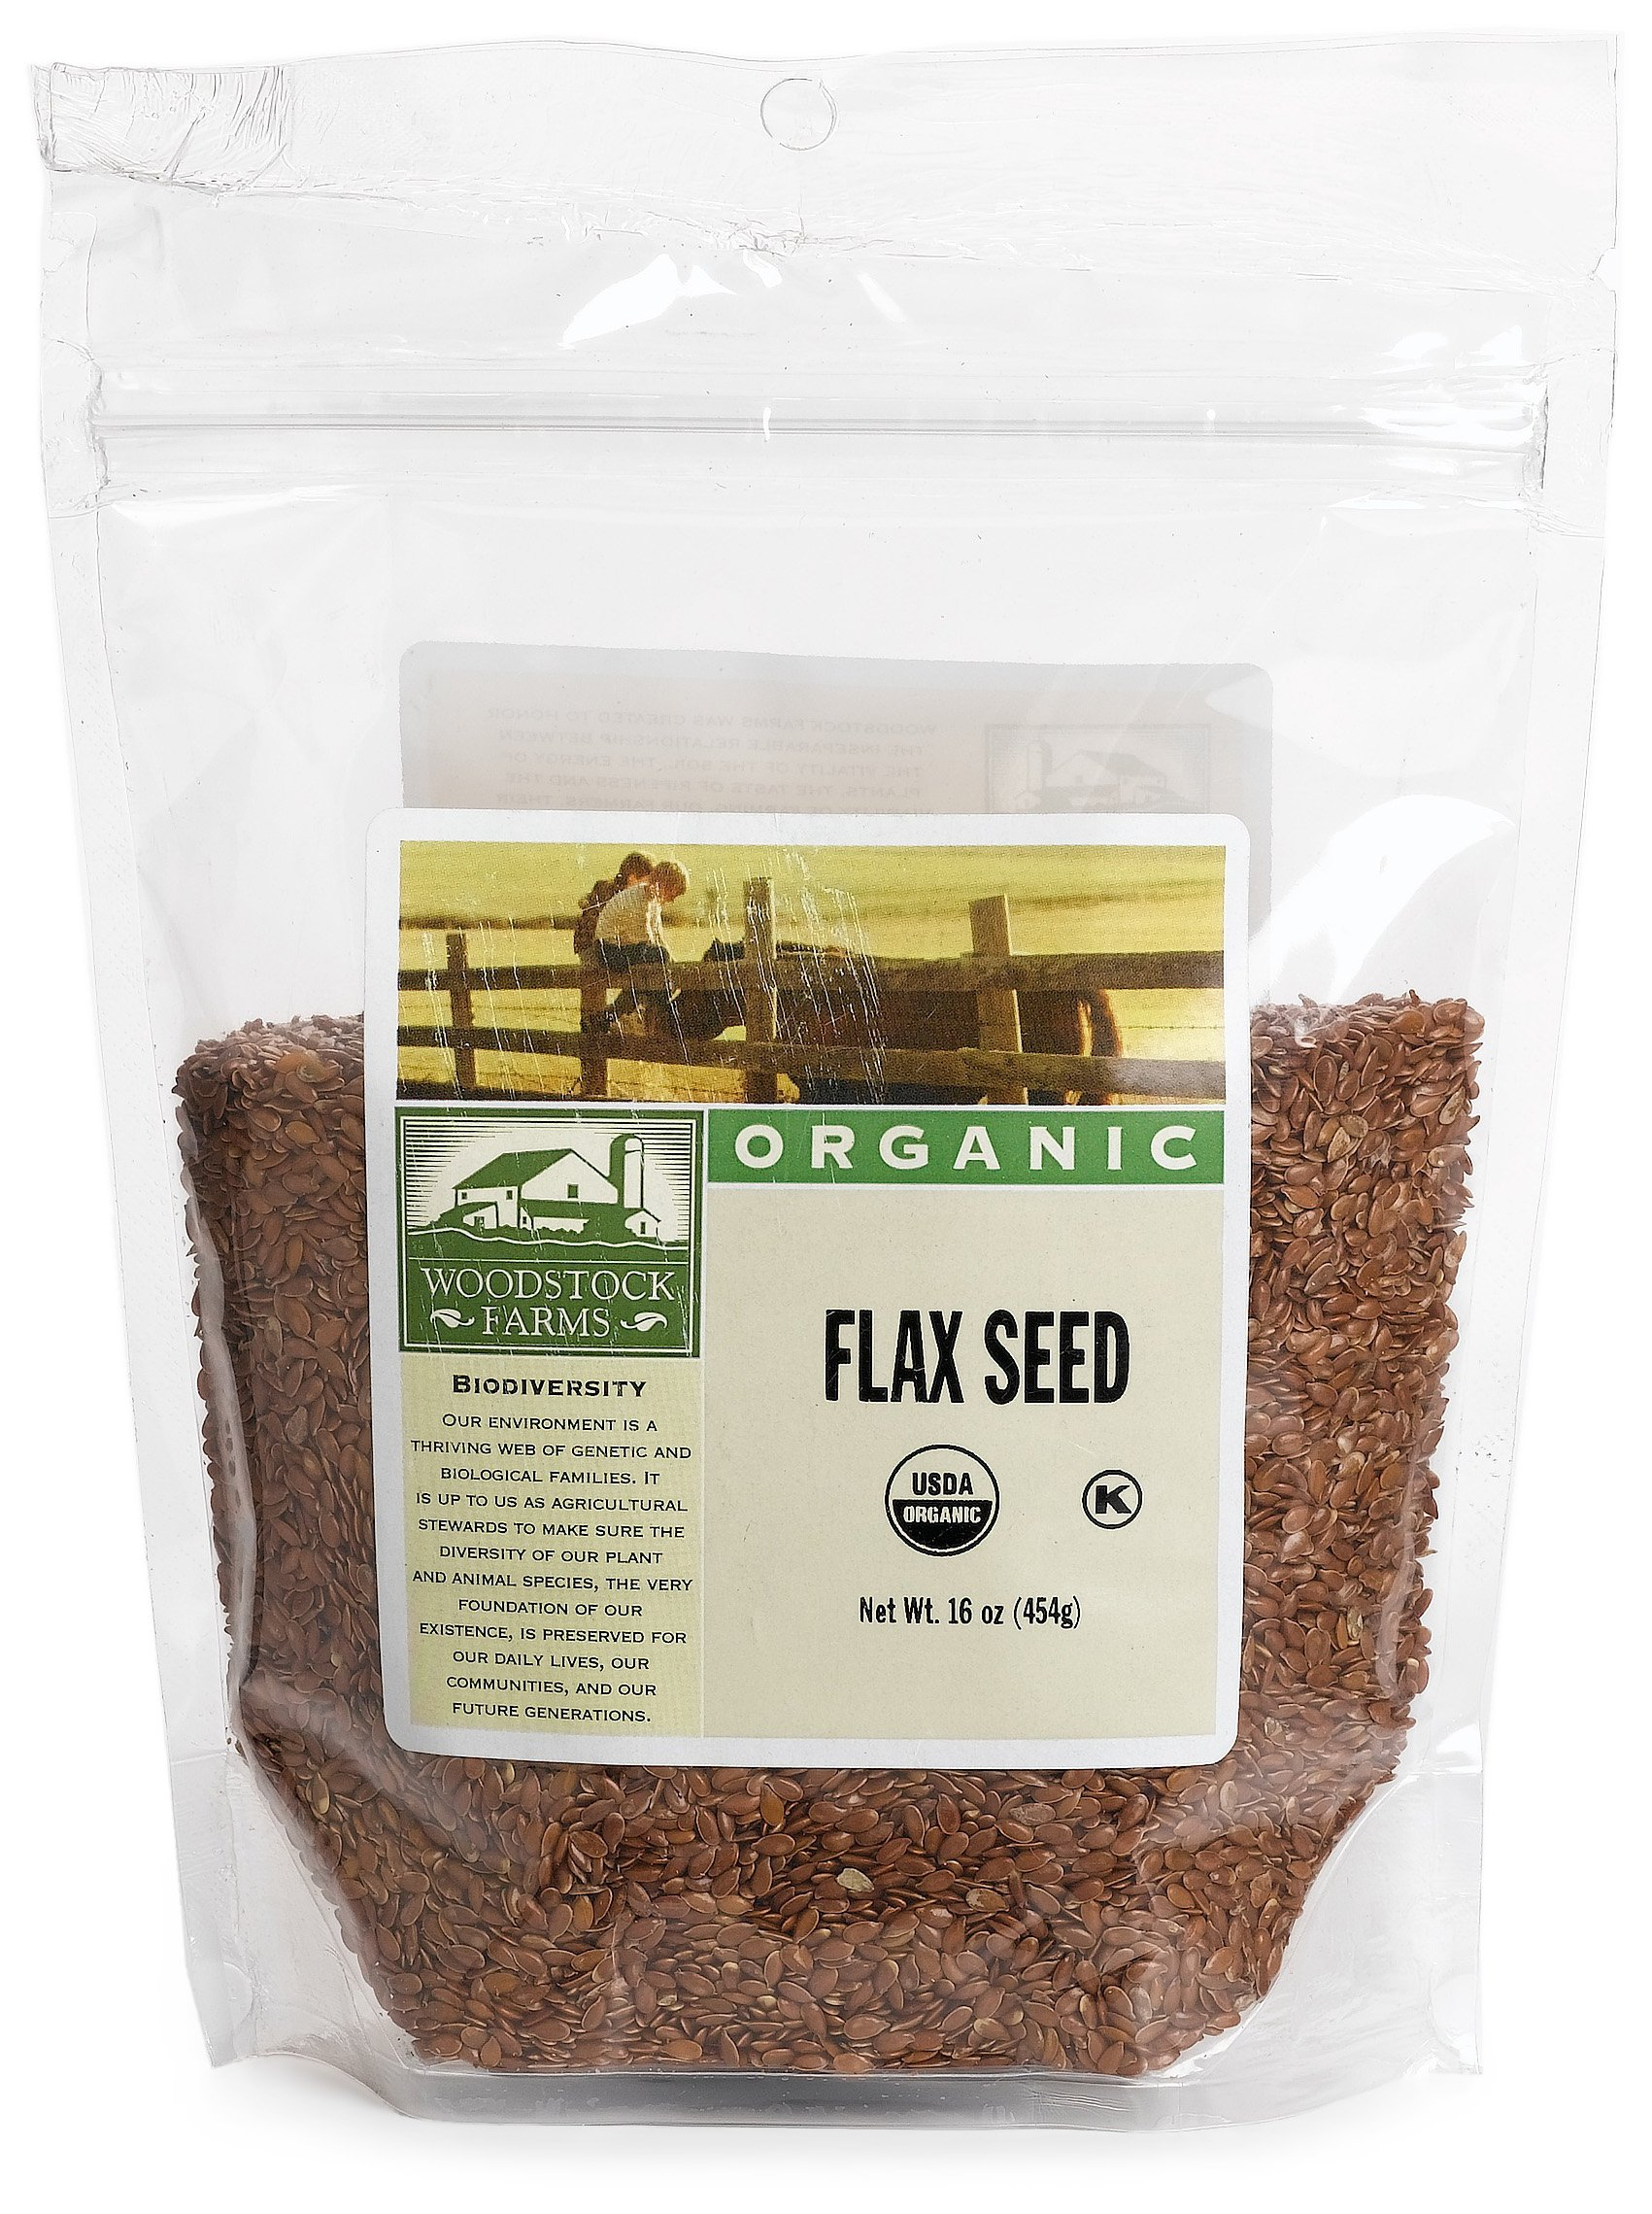 Woodstock Farms Flax Seed, Organic, 14-Ounce Bags (Pack of 8)